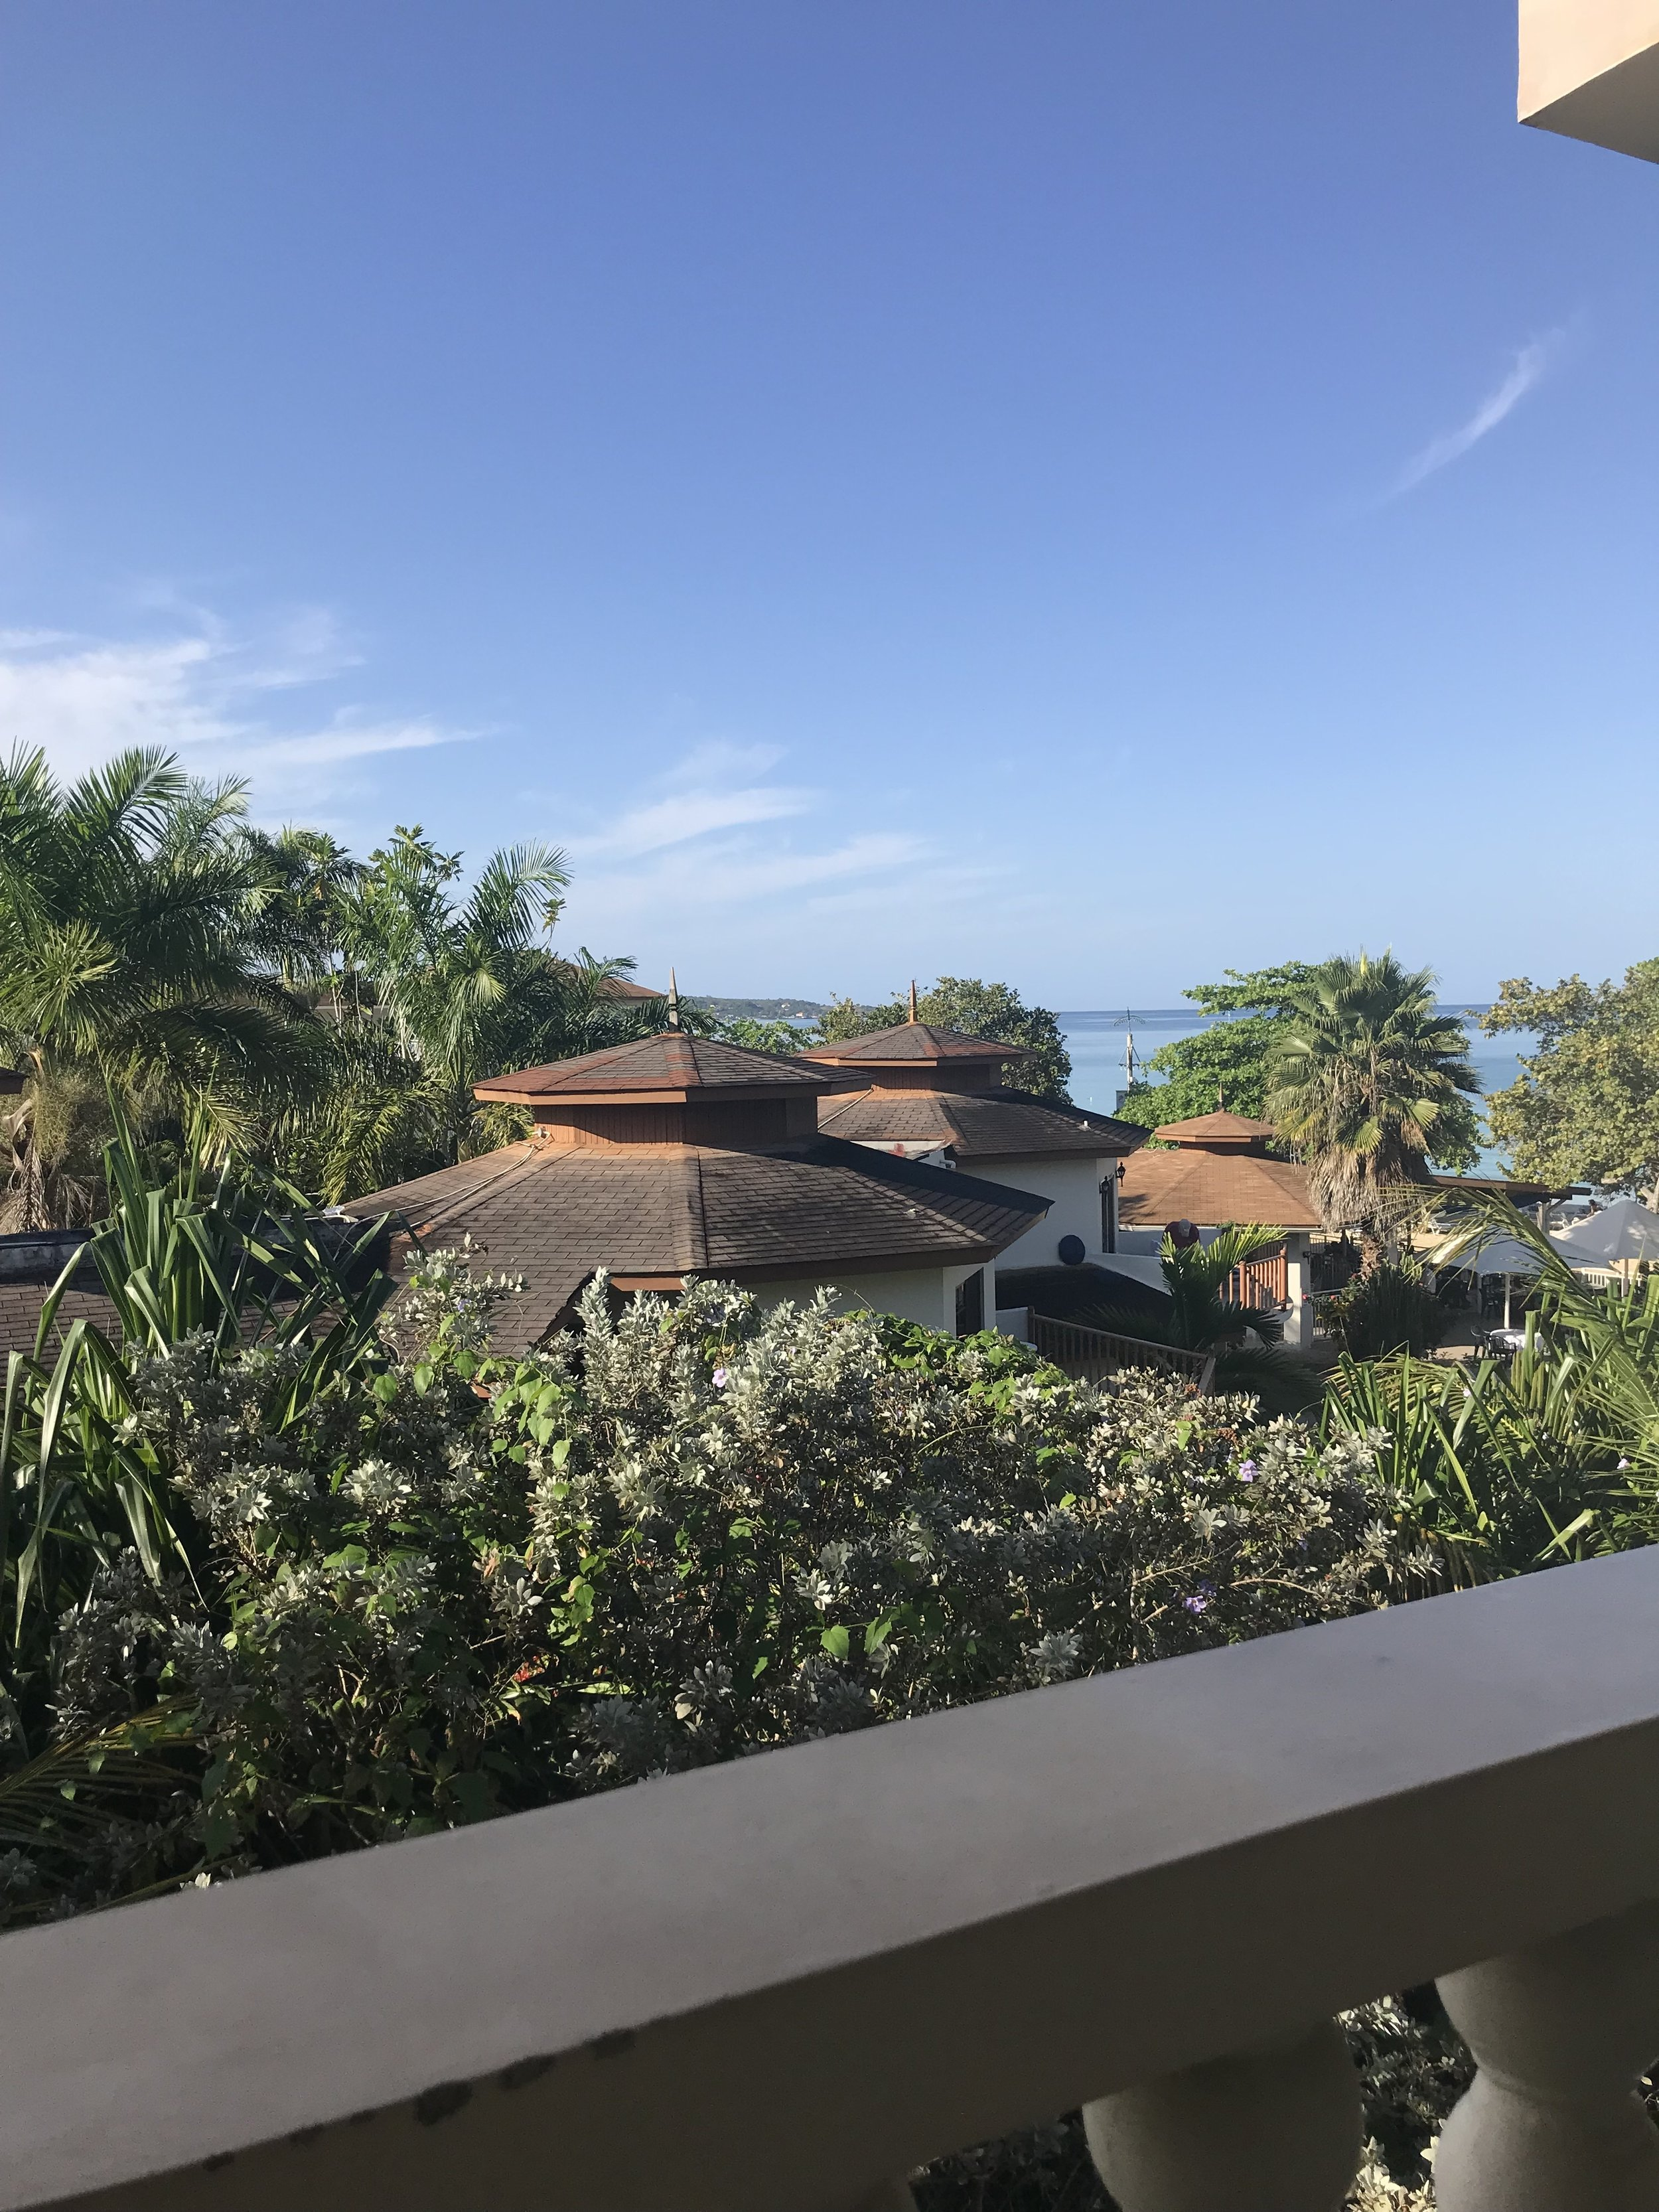 View from the balcony at Sandy Haven.